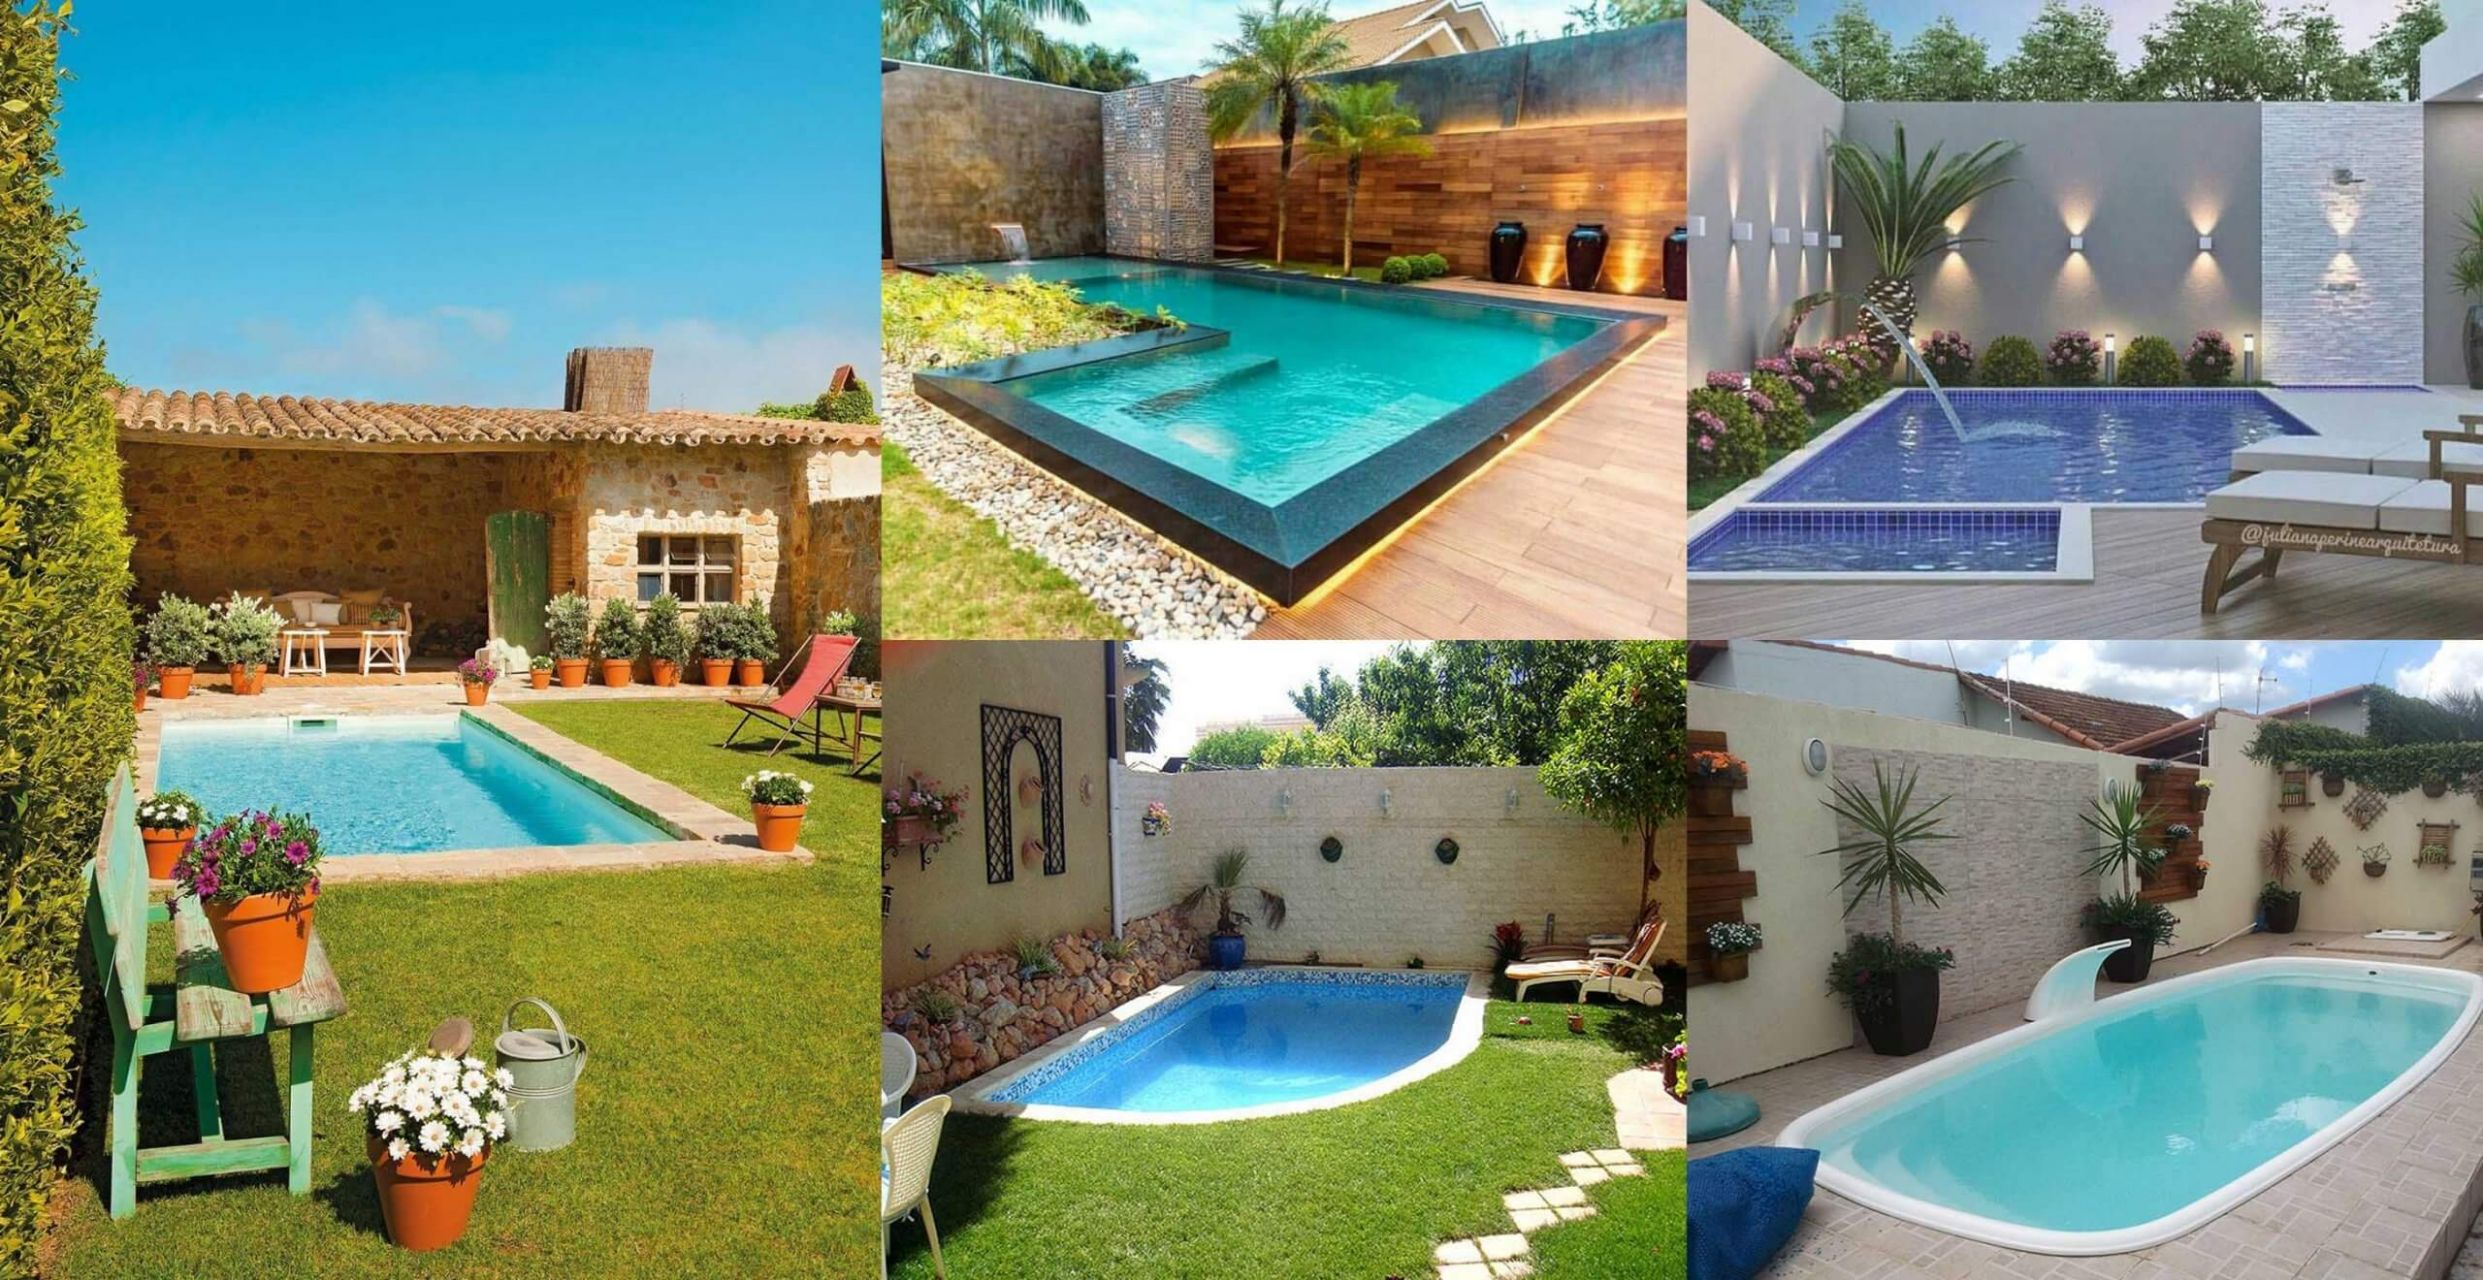 Top 12 Amazing Small Pool Ideas For Your Backyard - Engineering ..